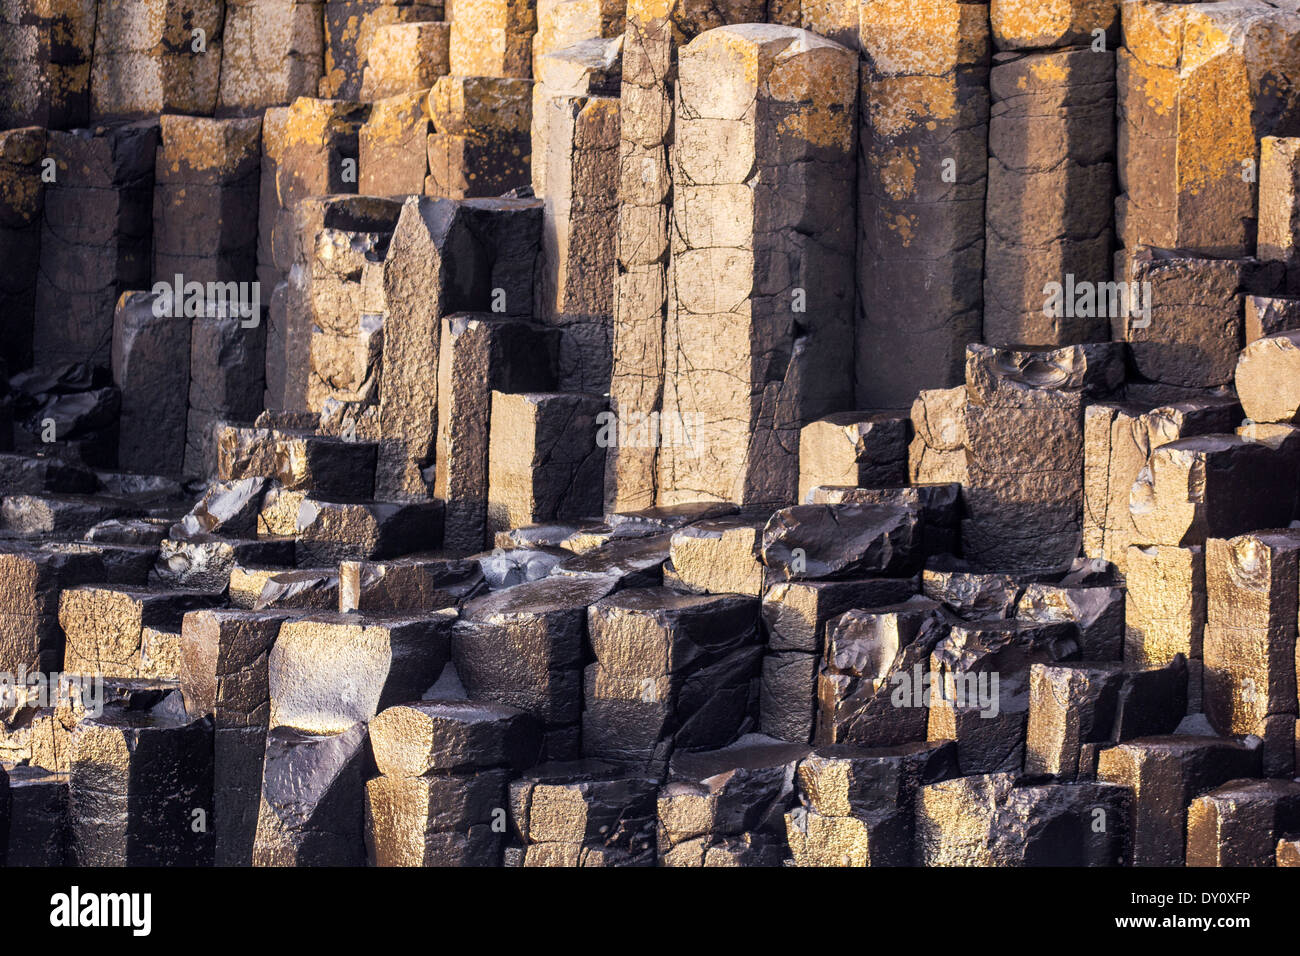 Details of the columns from the Giant's Causeway, UNESCO world Heritage Site, Northern Ireland. - Stock Image